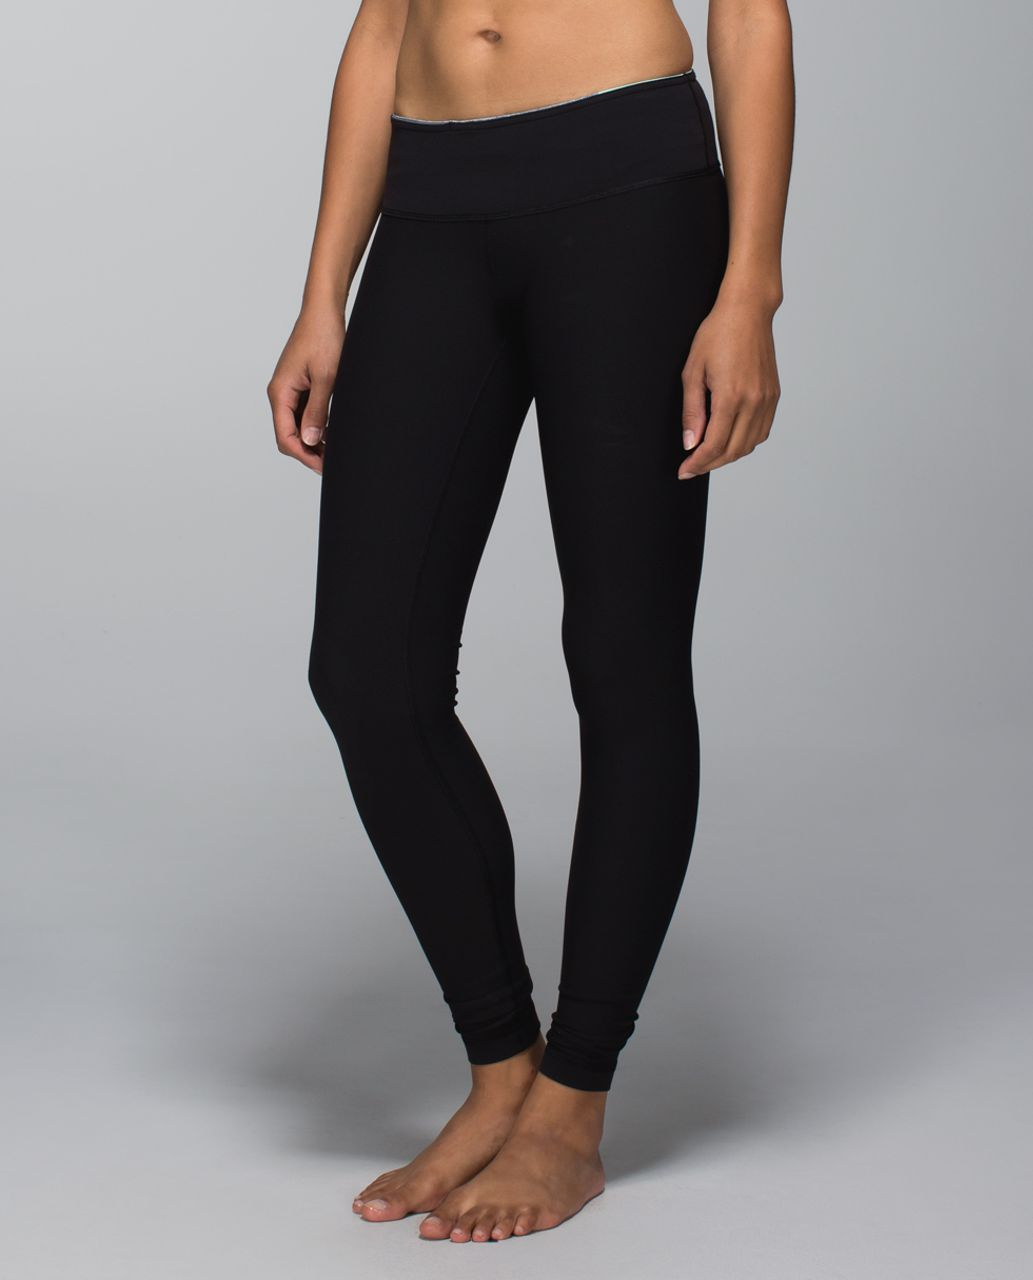 Lululemon Wunder Under Pant *Full-On Luon - Black / Fa14 Quilt 10